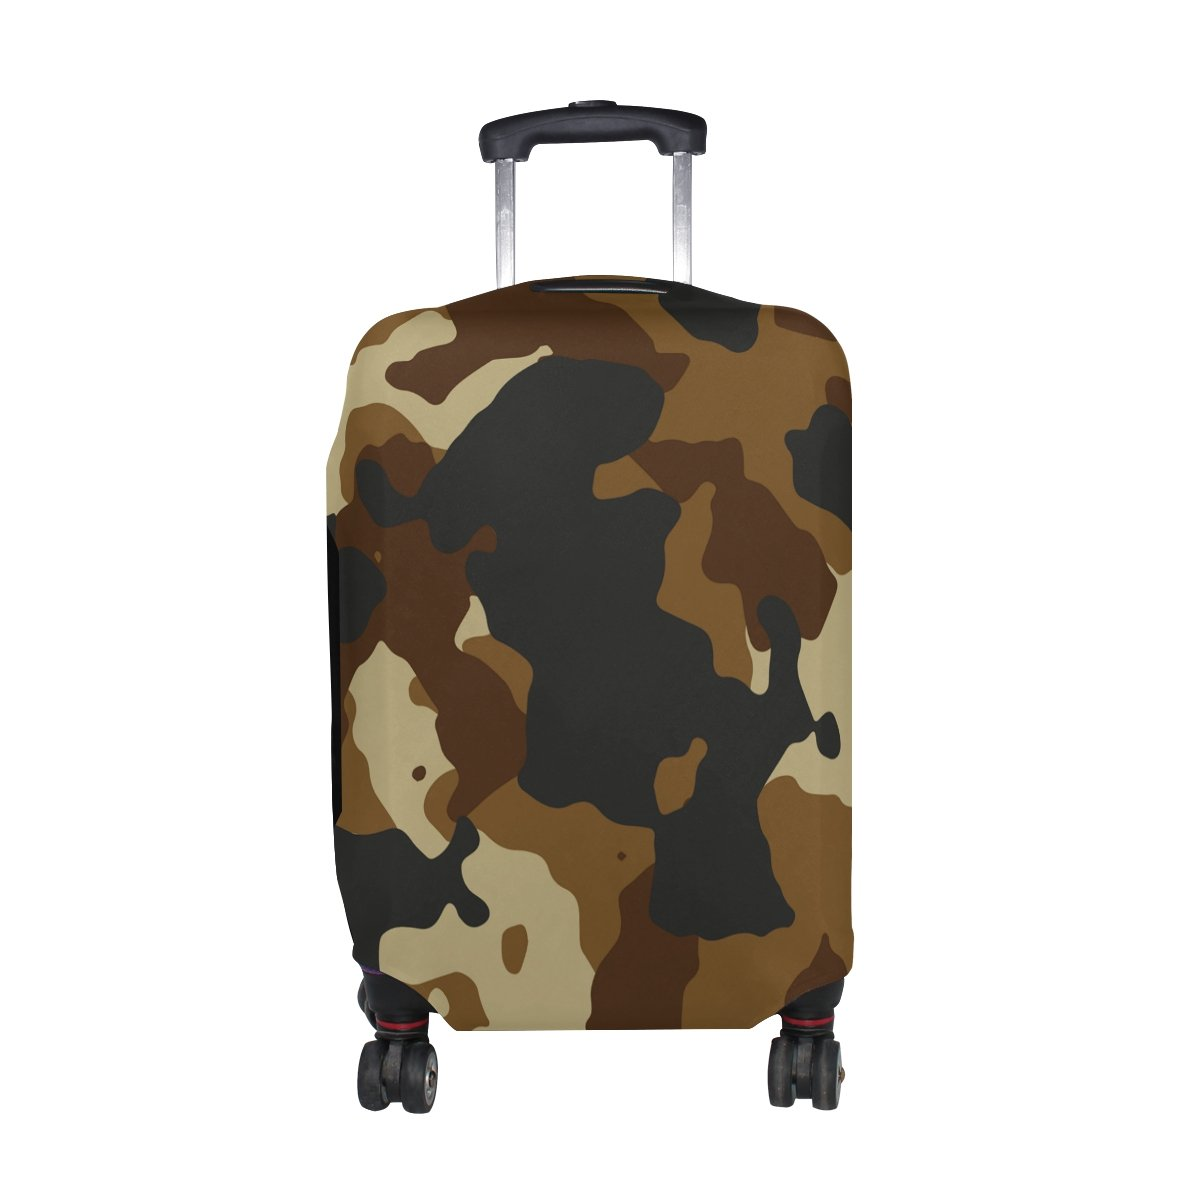 Military Camo Camouflage Pattern Print Travel Luggage Protector Baggage Suitcase Cover Fits 18-20 Inch Luggage